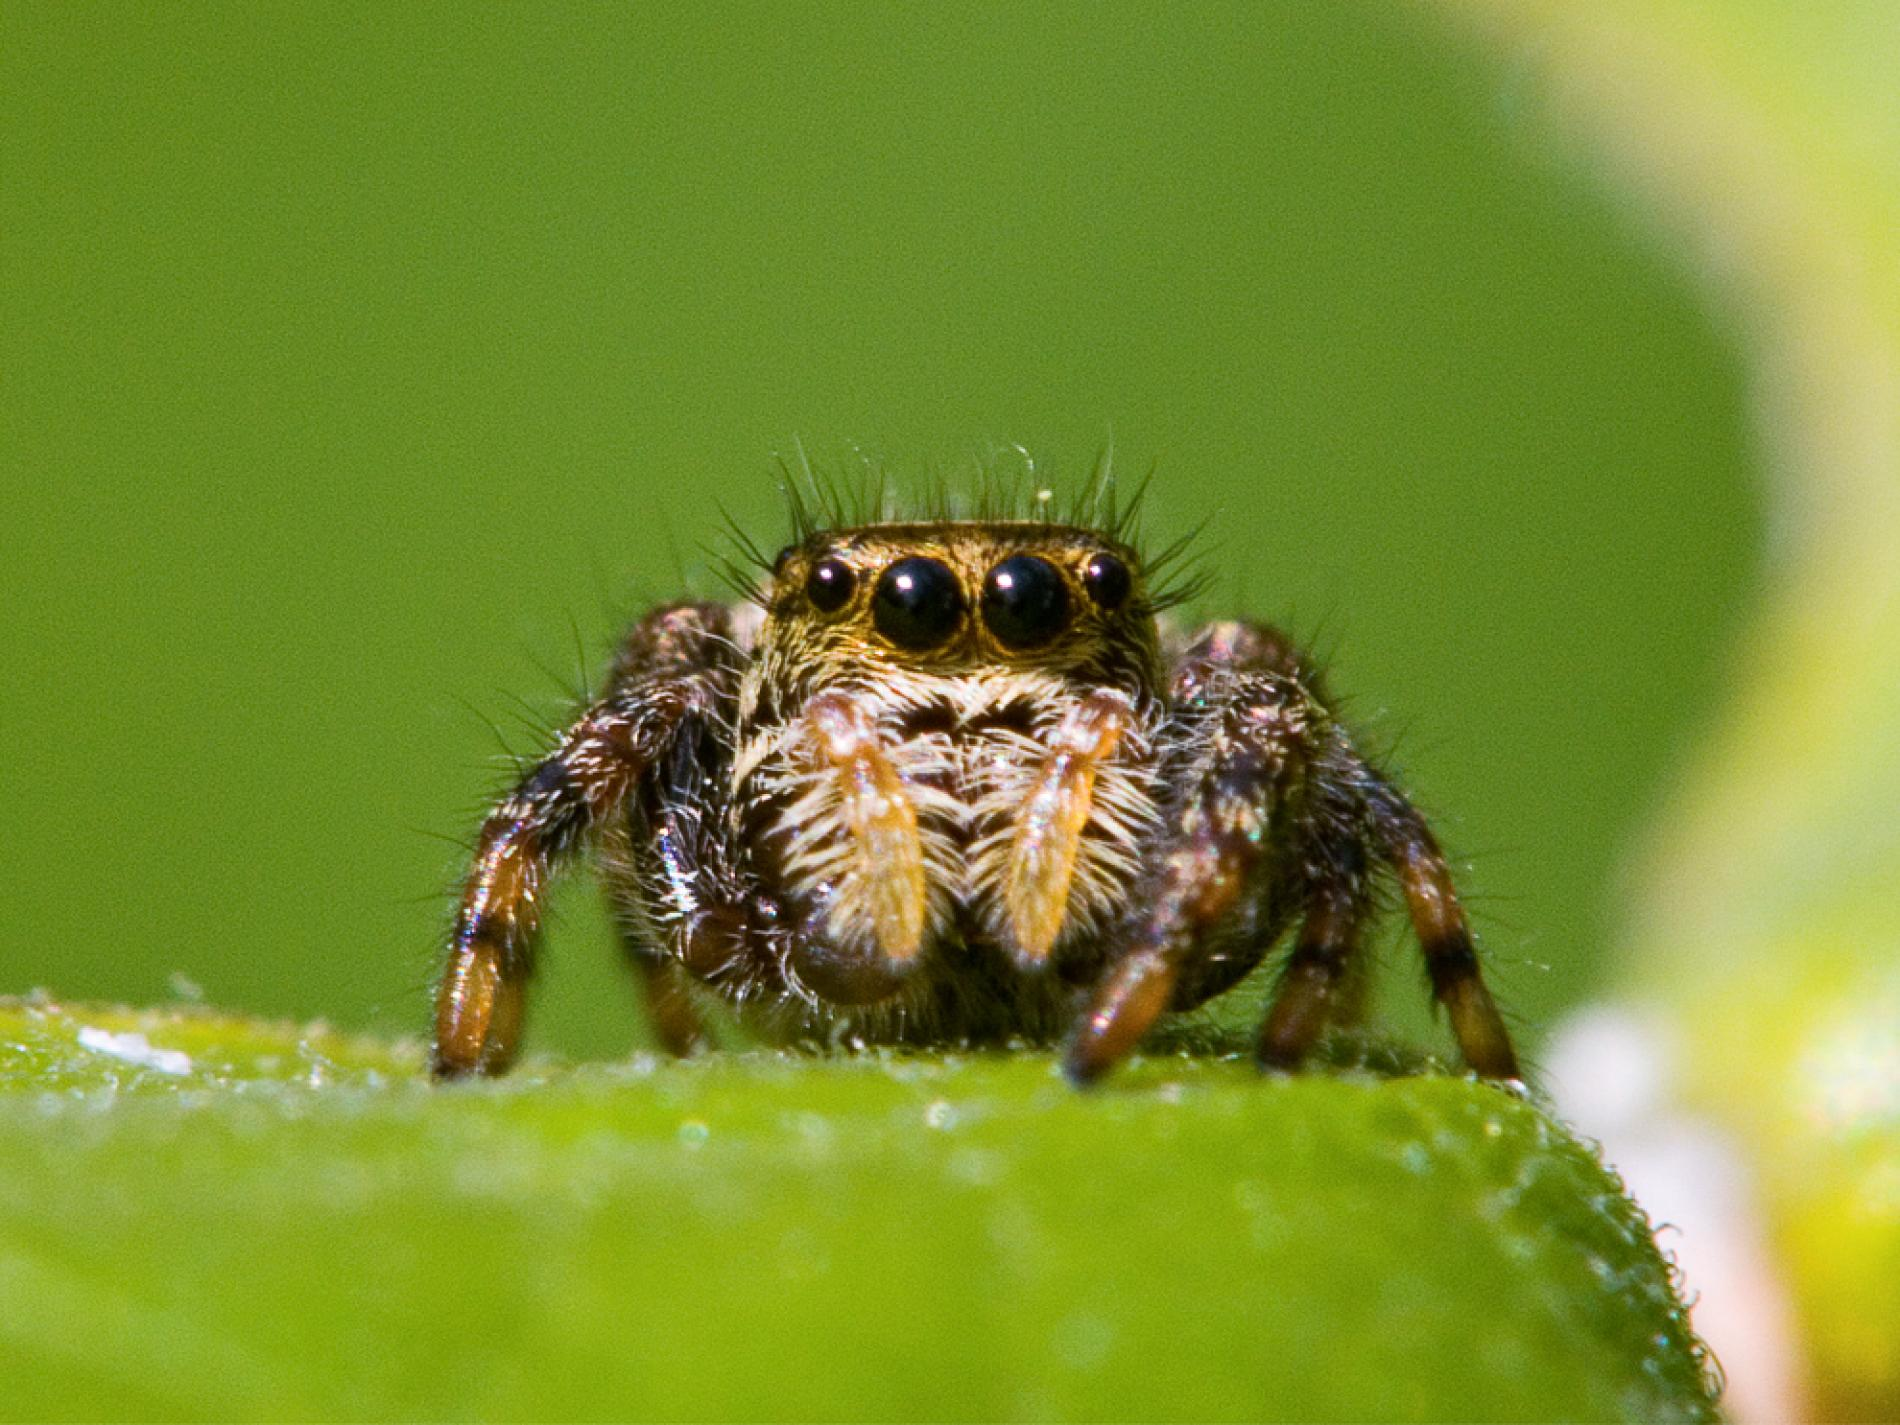 How To Get Rid Of Spiders In The Backyard 2021 - Image By nationalgeographic